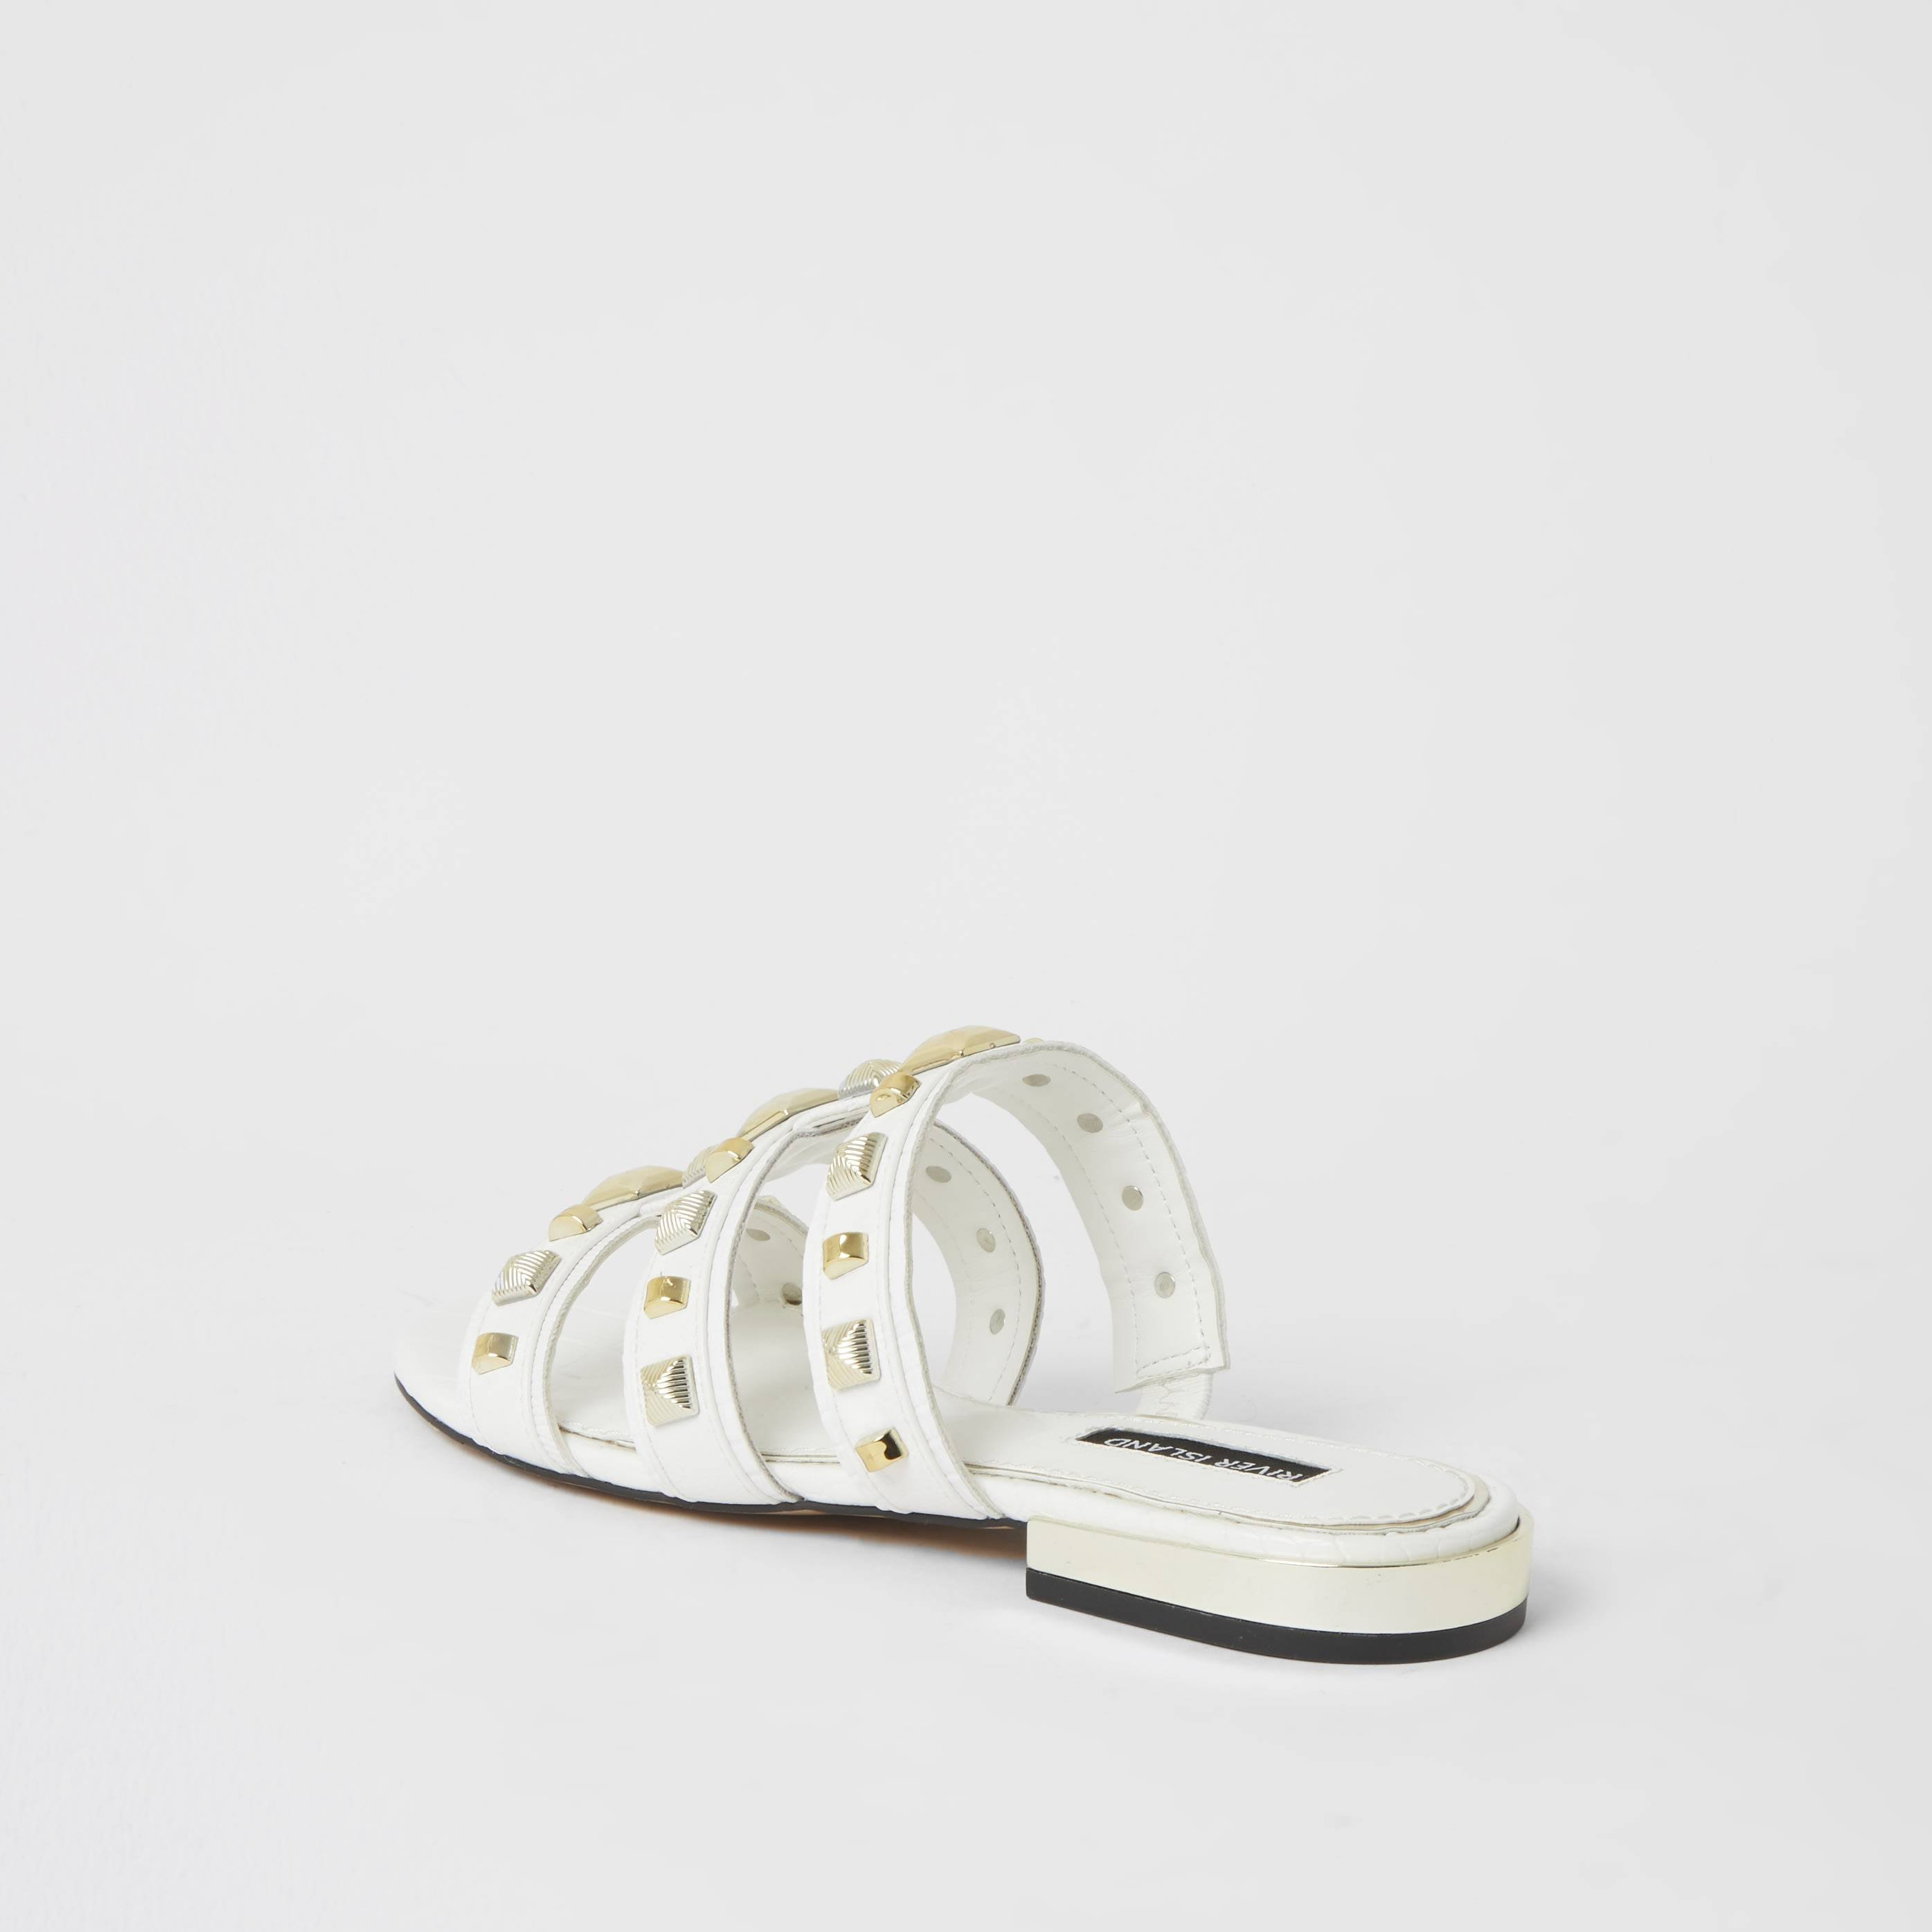 river island Womens White caged studded flat Mule sandal (6)